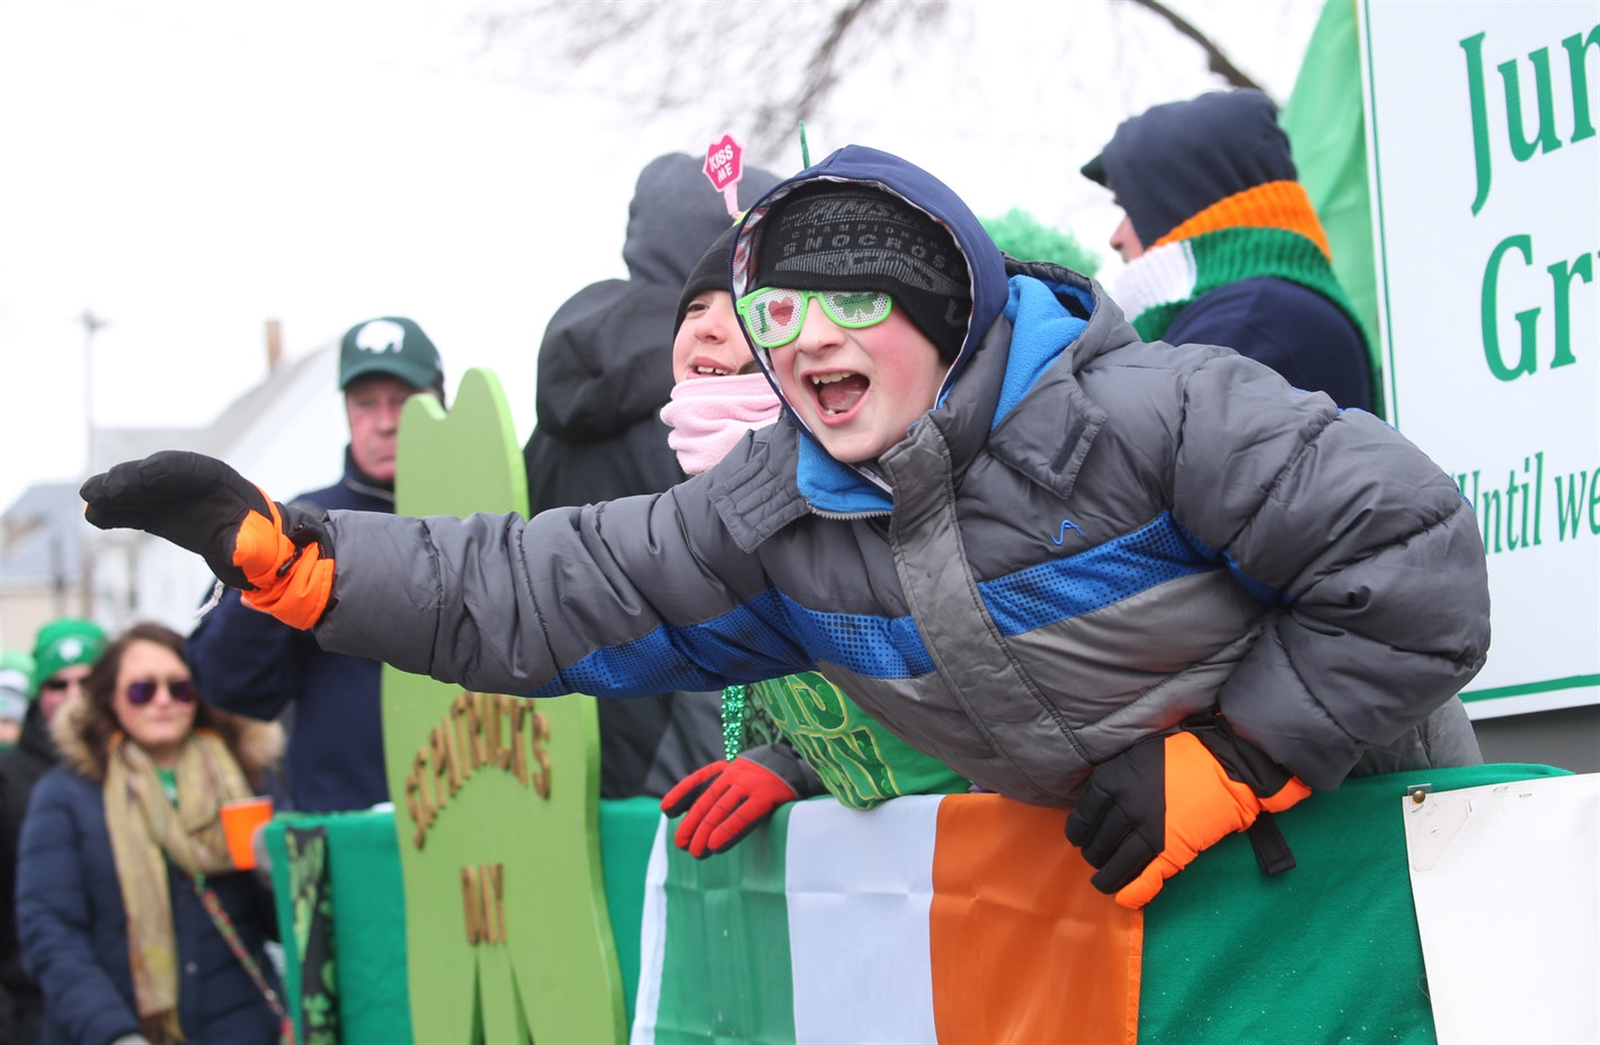 A young boy rides a float in St. Patrick's Day style during the 'Old Neighborhood' St. Patrick's Day Parade on Saturday, March 11, 2017. (Sharon Cantillon/Buffalo News)